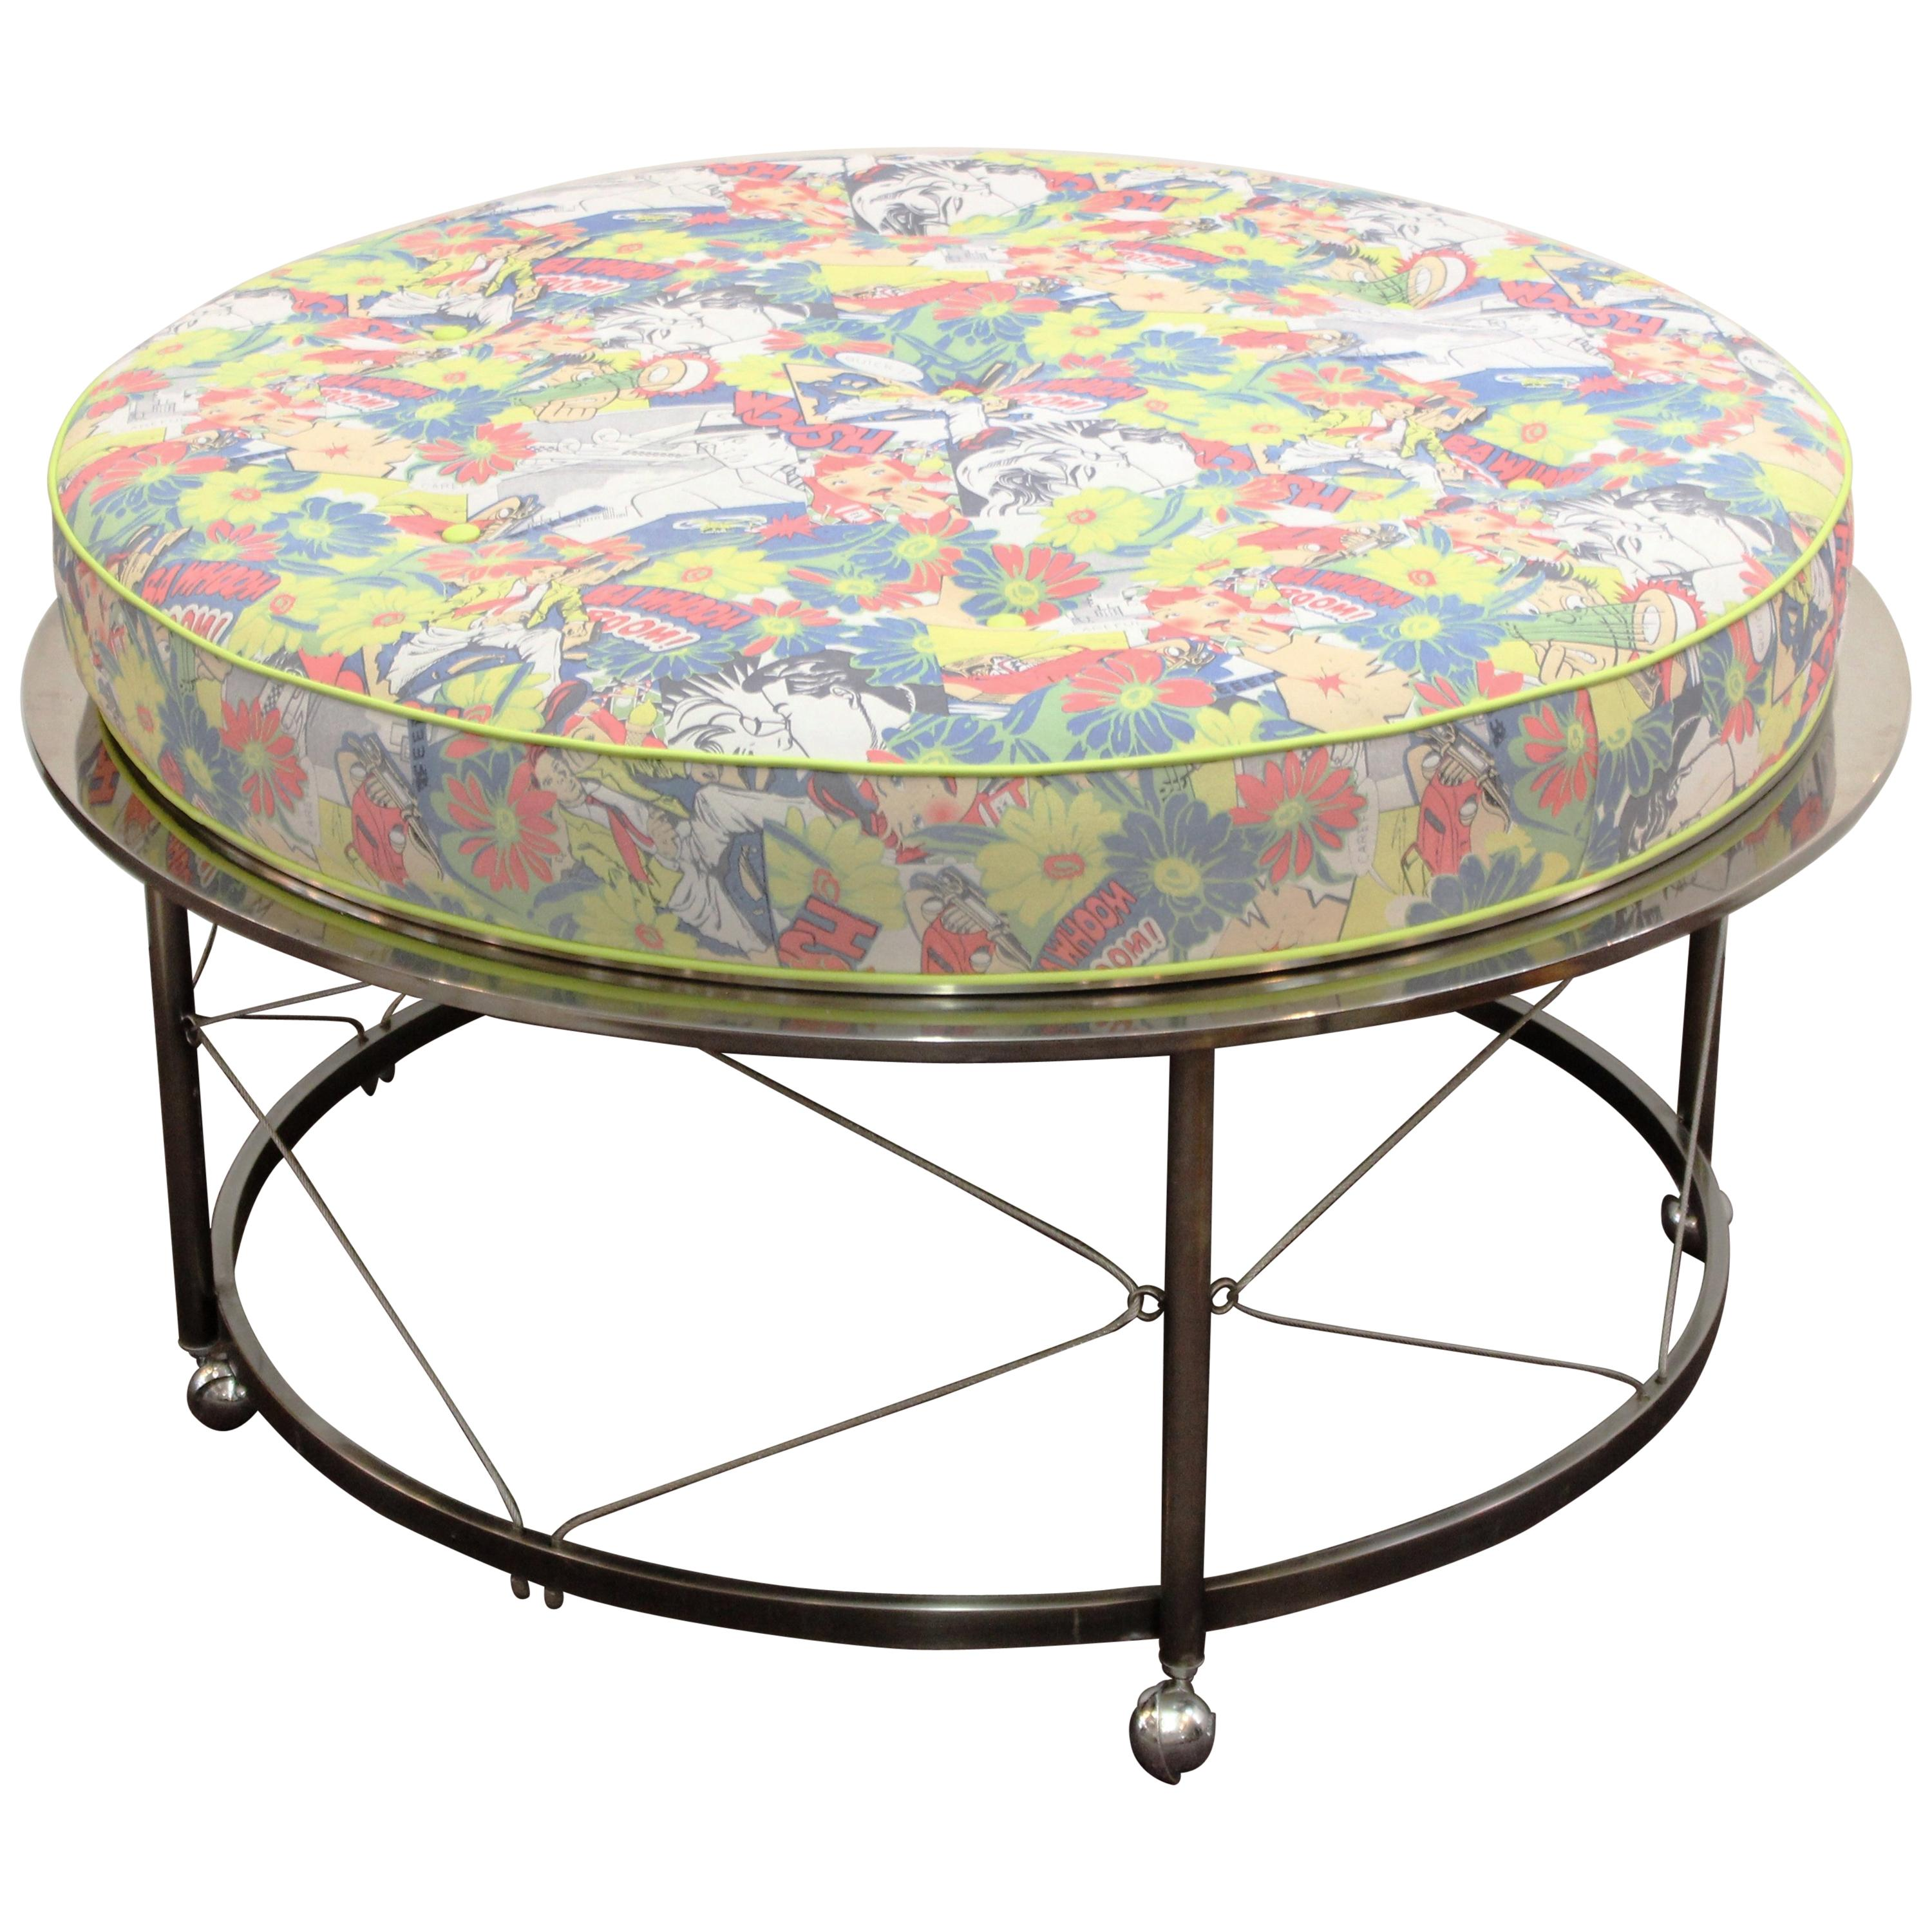 Ottoman Upholstery Midcentury Ottoman With Chrome Frame And Pop Art Style Upholstery